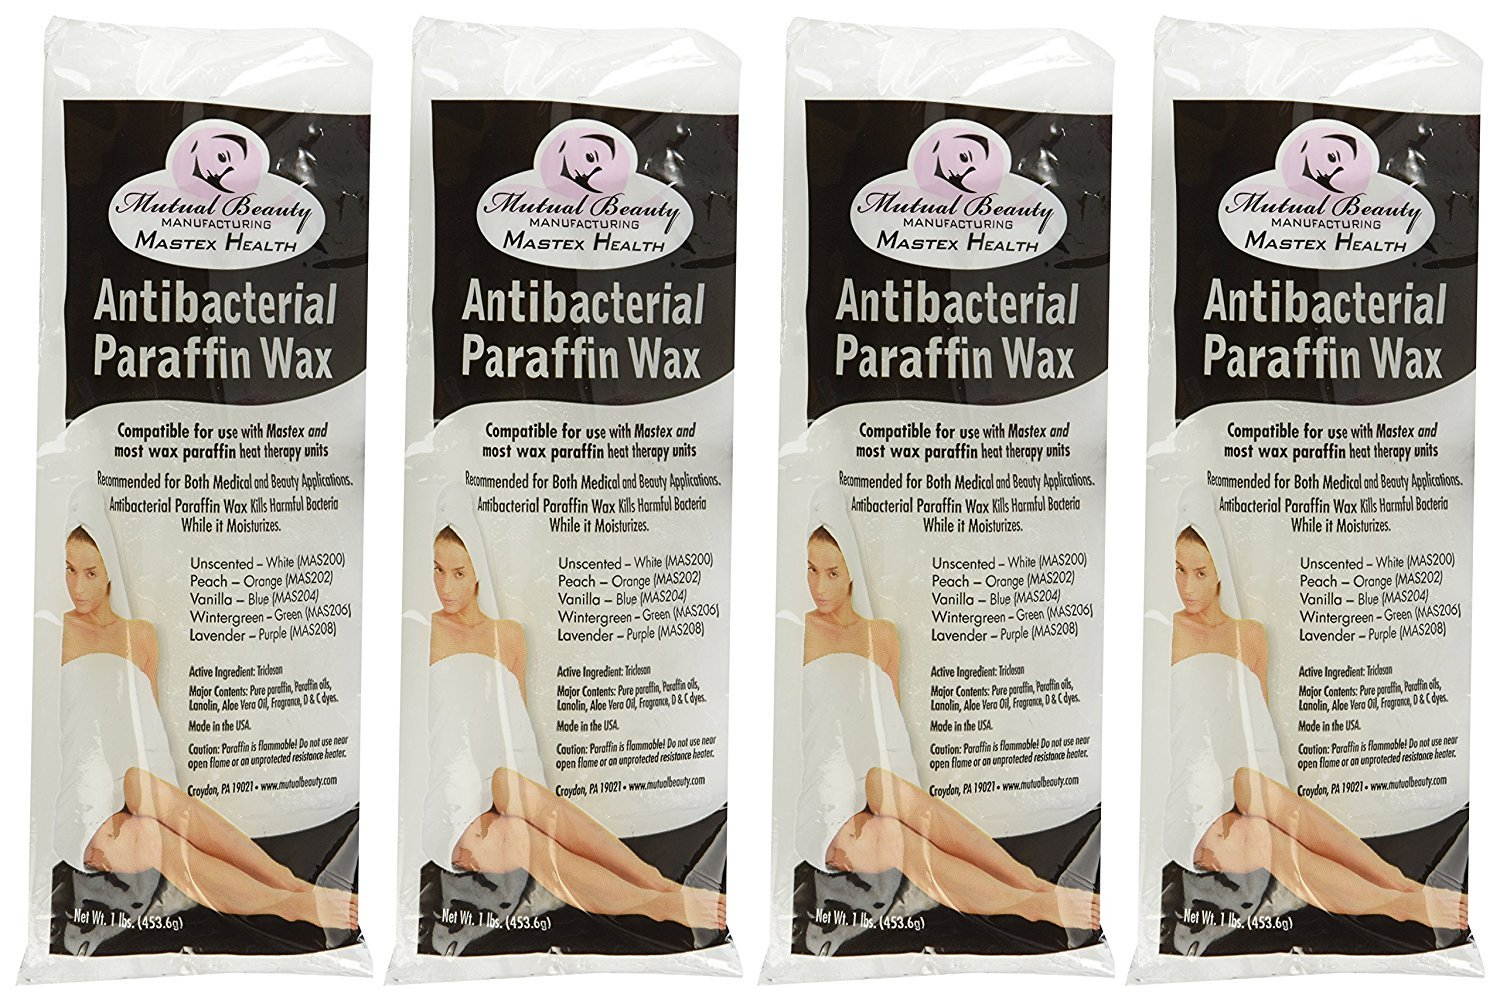 Mutual Beauty Antibacterial Paraffin Wax 6lbs - Paraffin Wax - Unscented